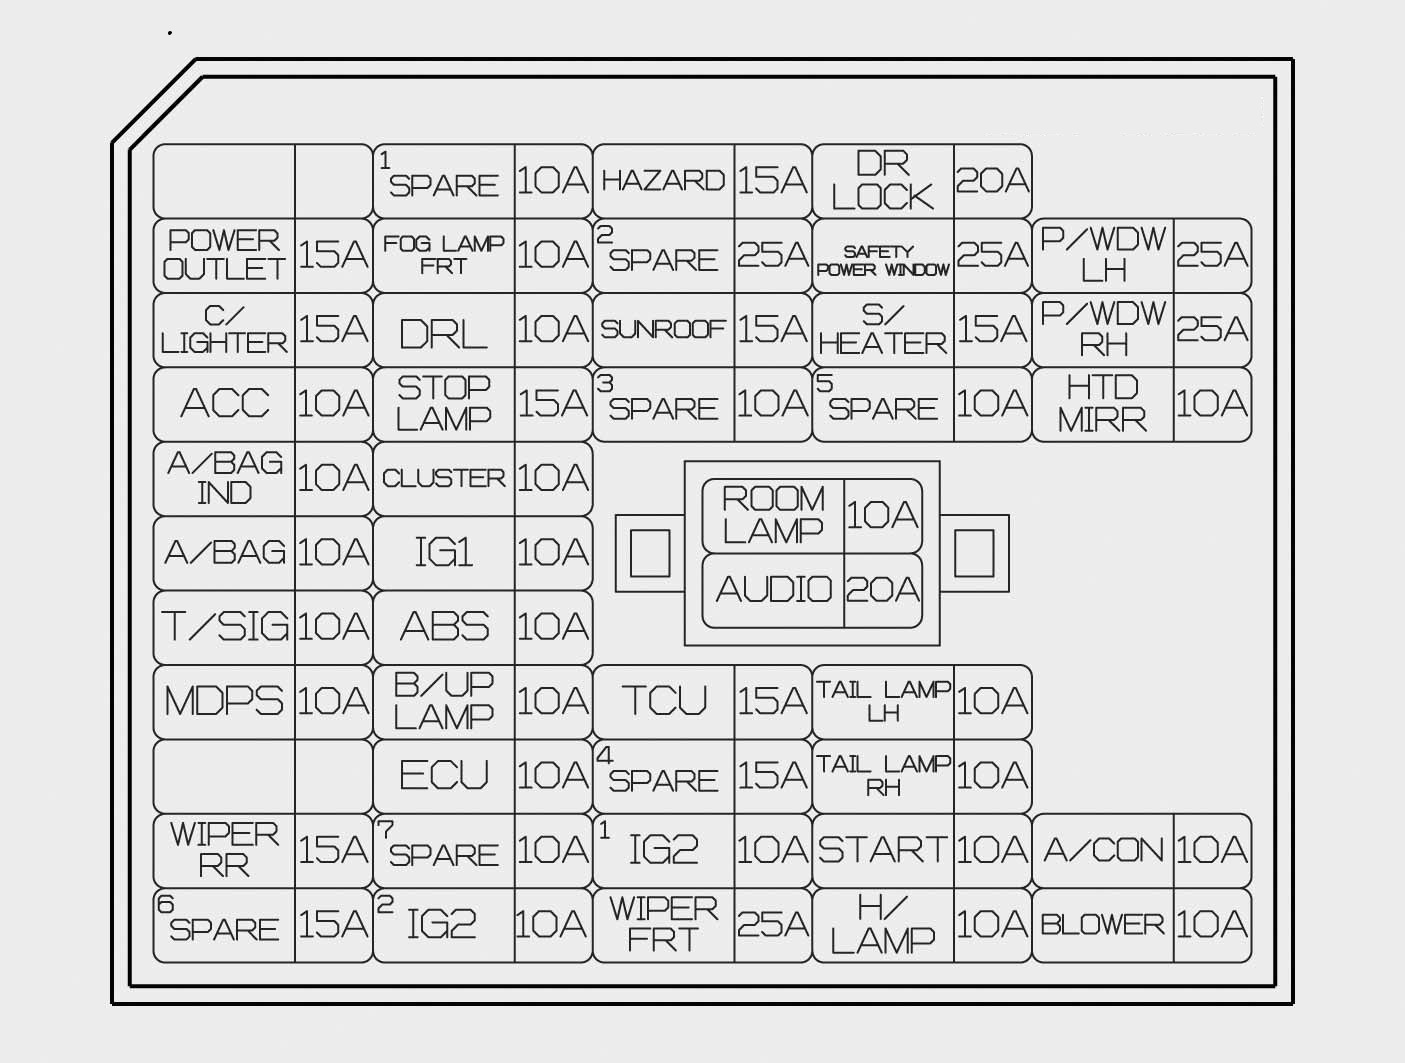 hight resolution of 2007 hyundai sonata fuse box wiring diagram 06 hyundai sonata fuse box 2006 hyundai azera fuse box